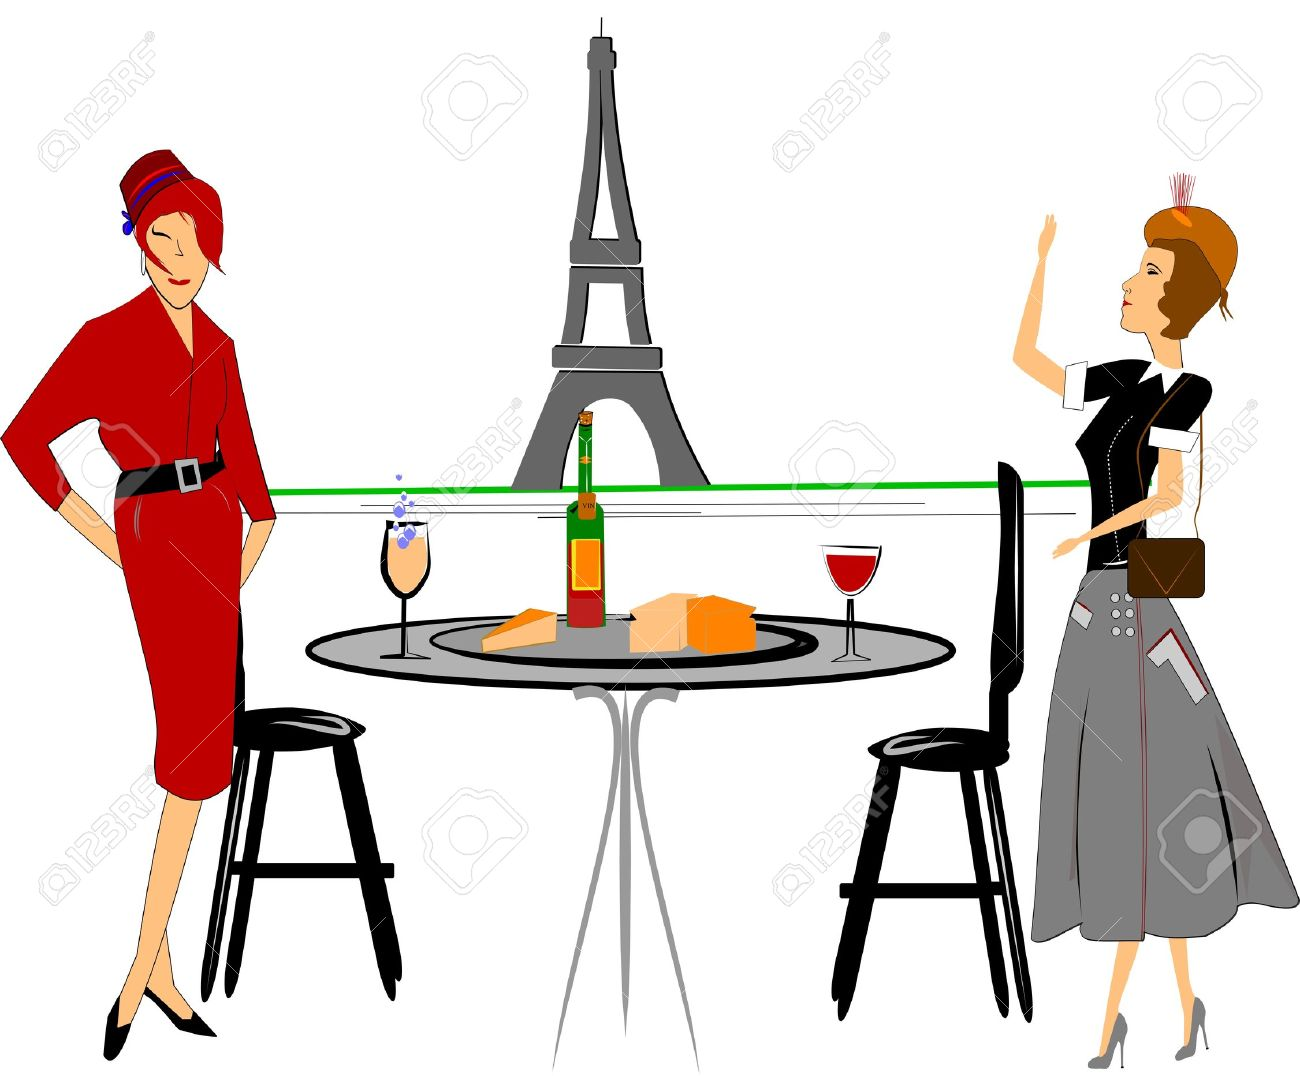 324 Brunch Table Stock Vector Illustration And Royalty Free Brunch.